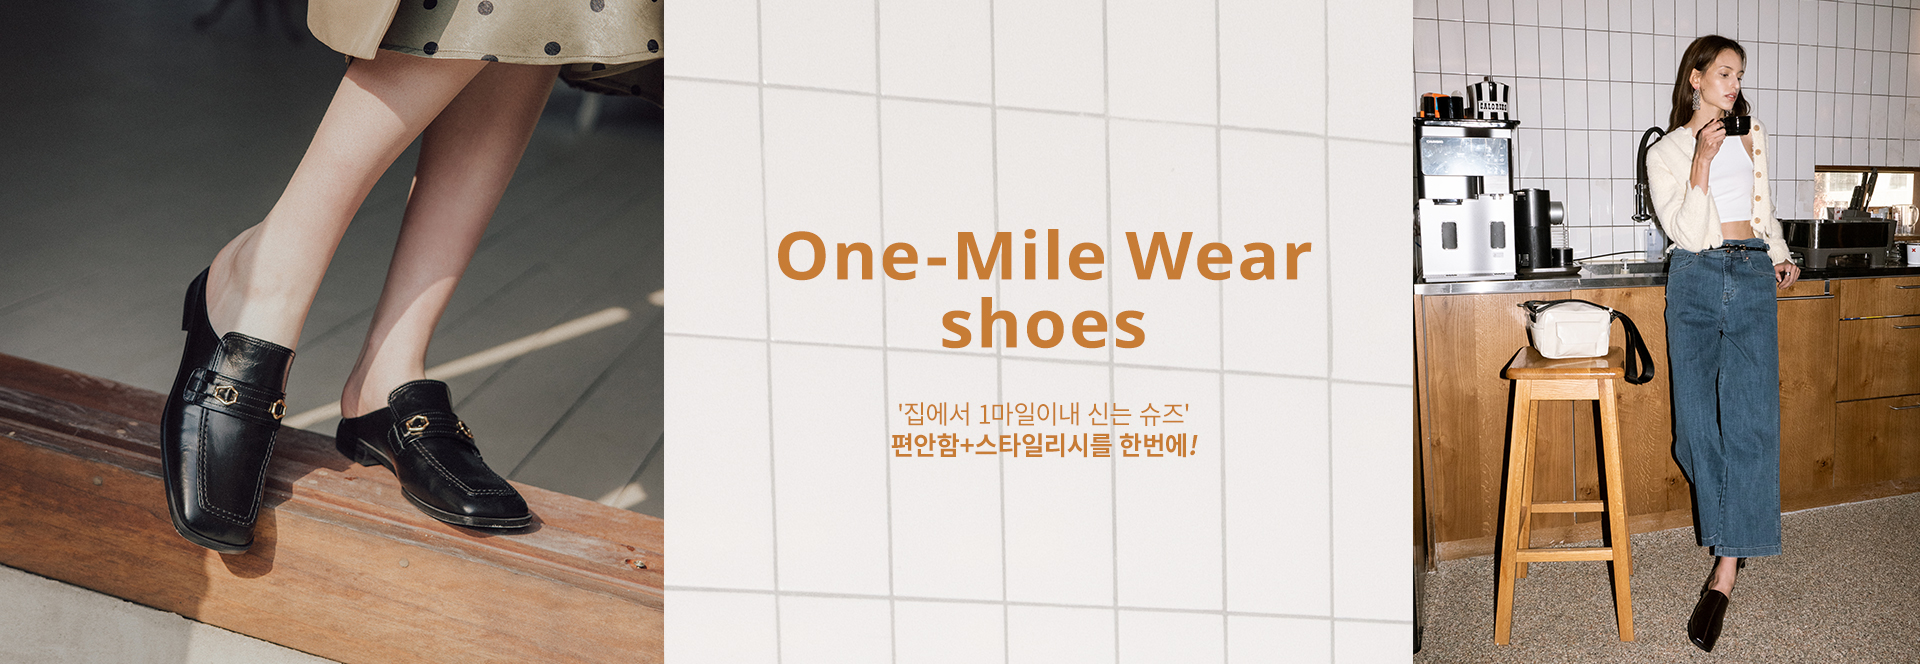 one-mile shoes